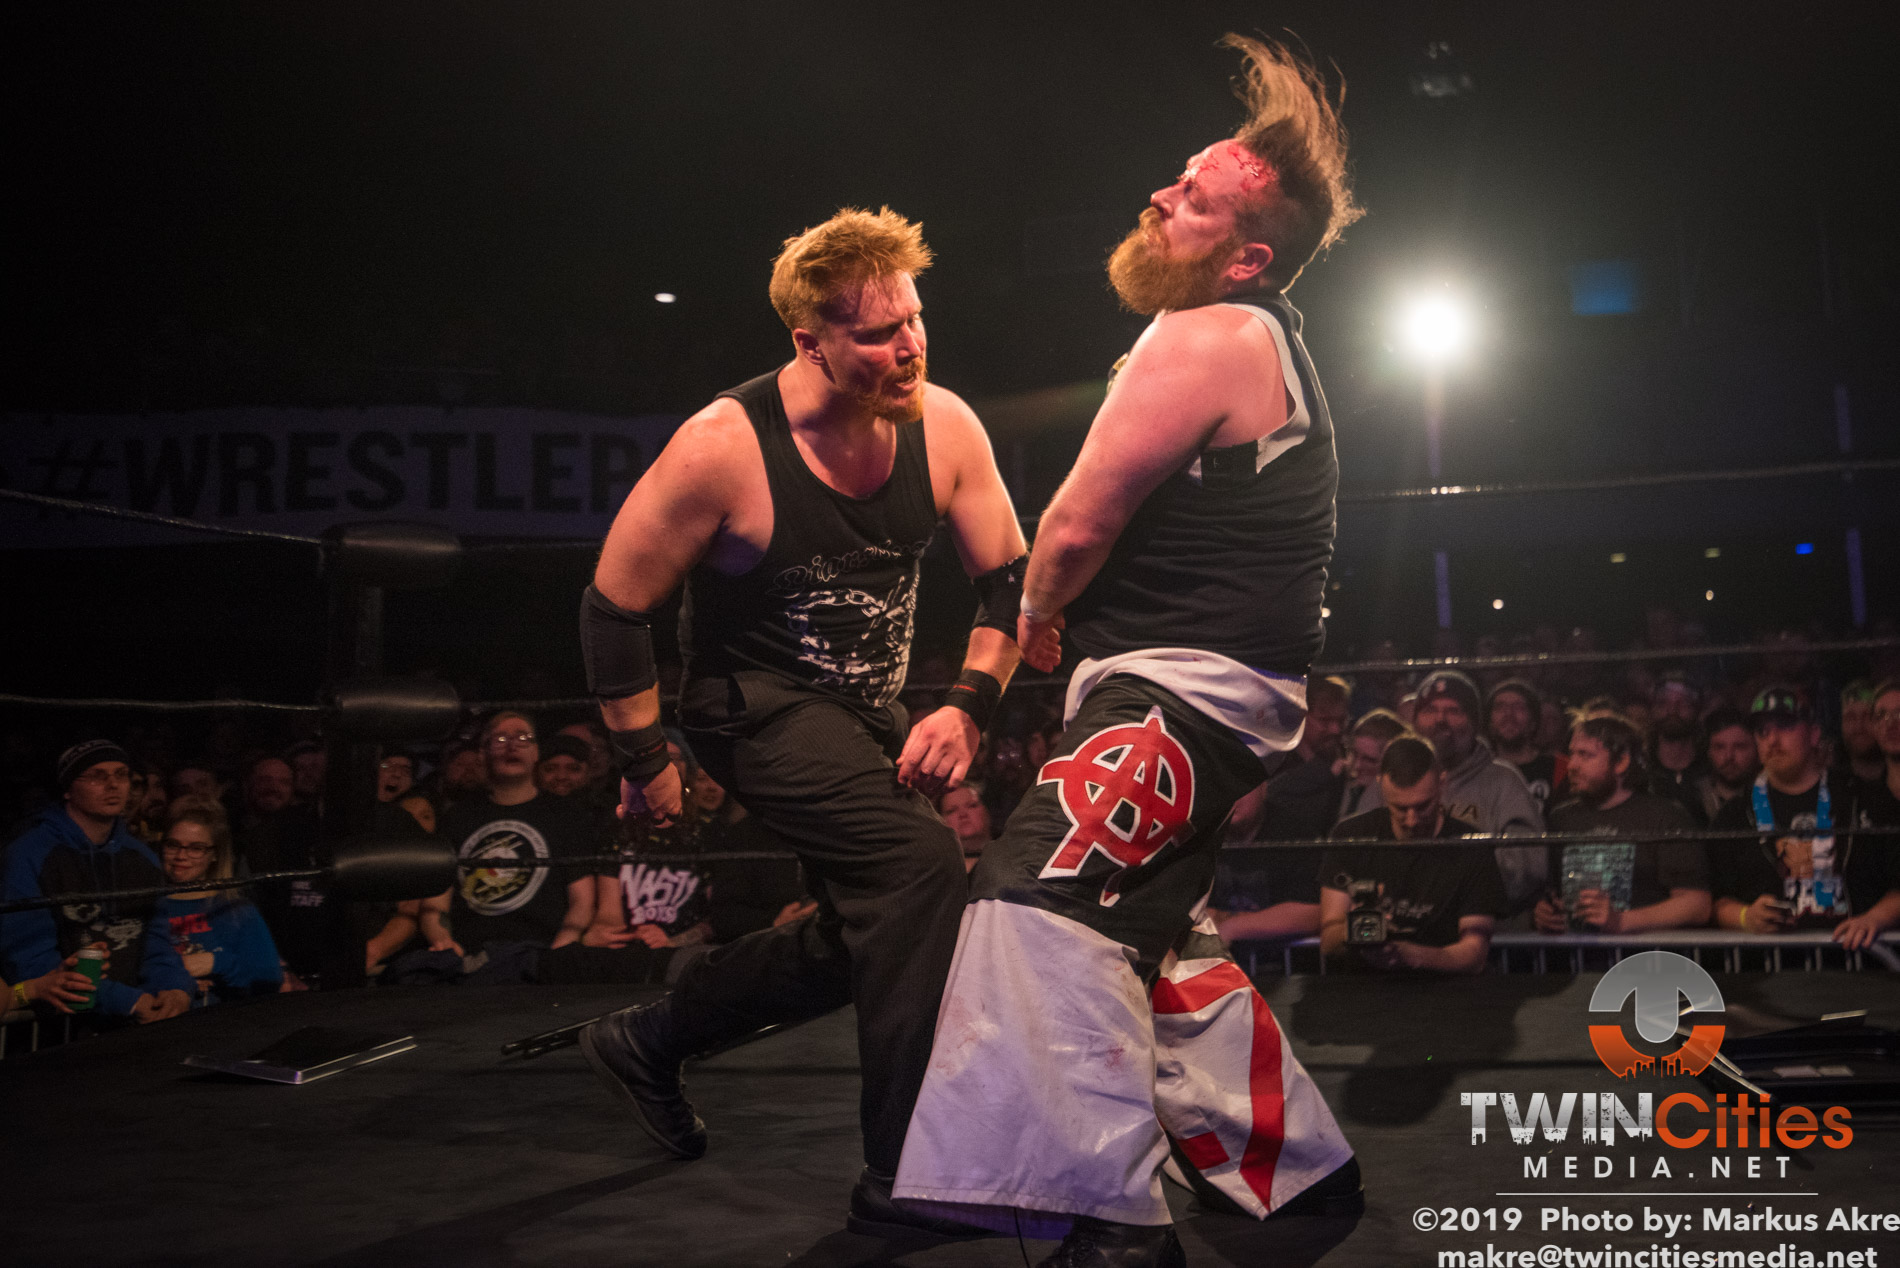 Wrestlepalooza - Match 4-15